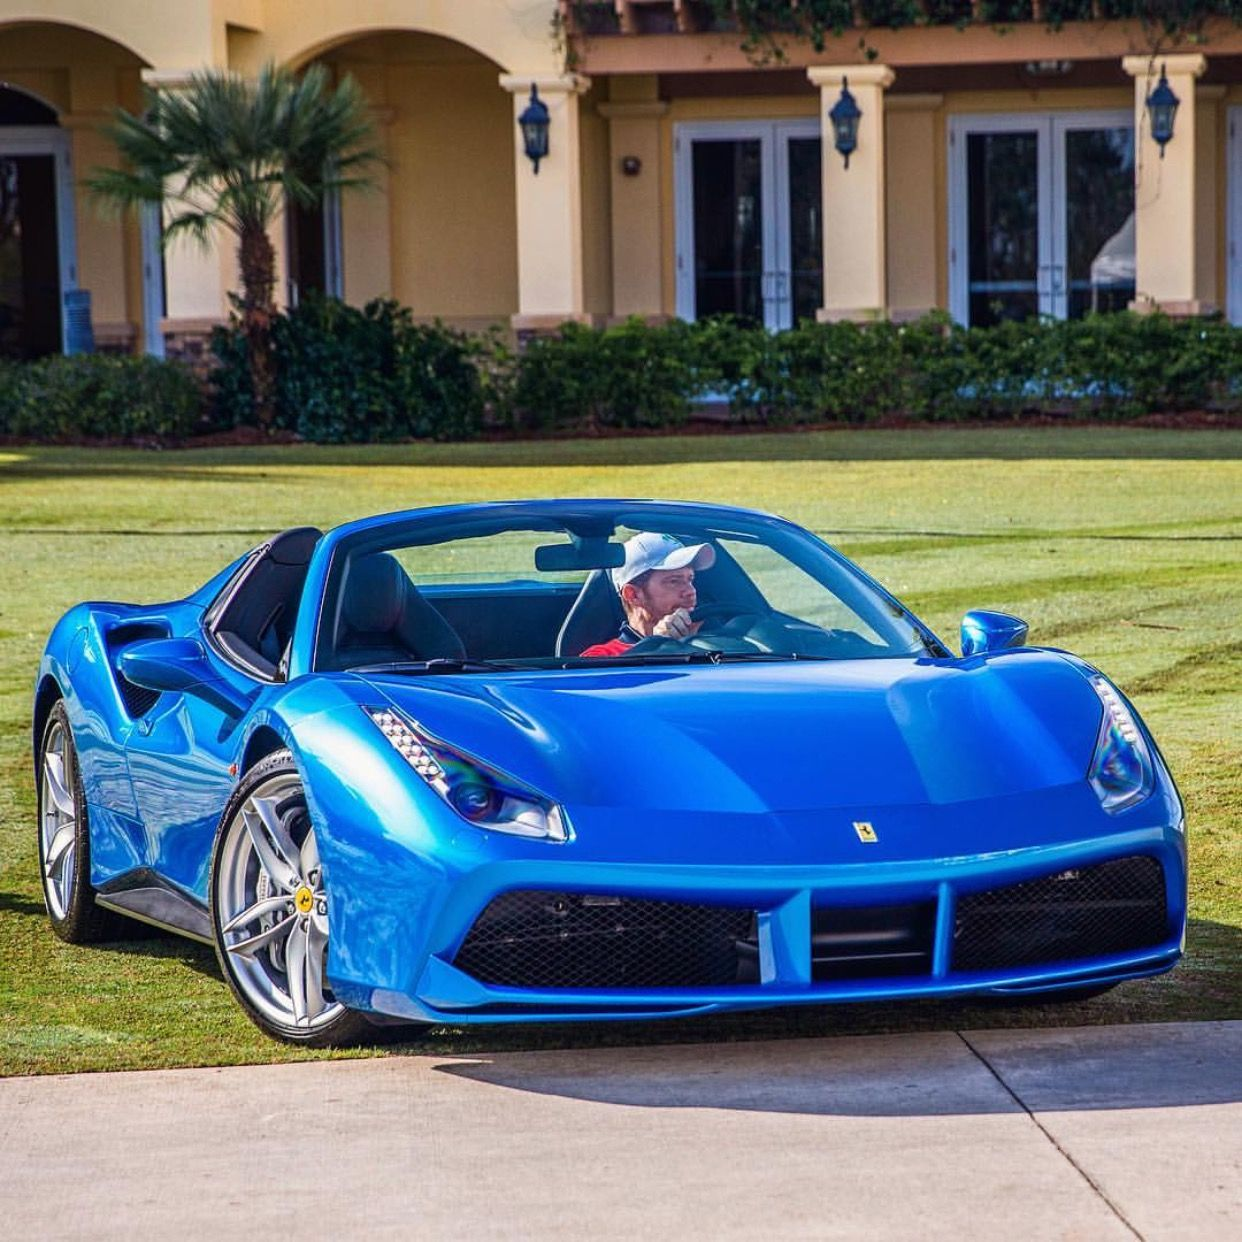 Ferrari F8 Tributo Imagined As A Spider: Ferrari 488 Spider Painted In Blue Corsa Photo Taken By